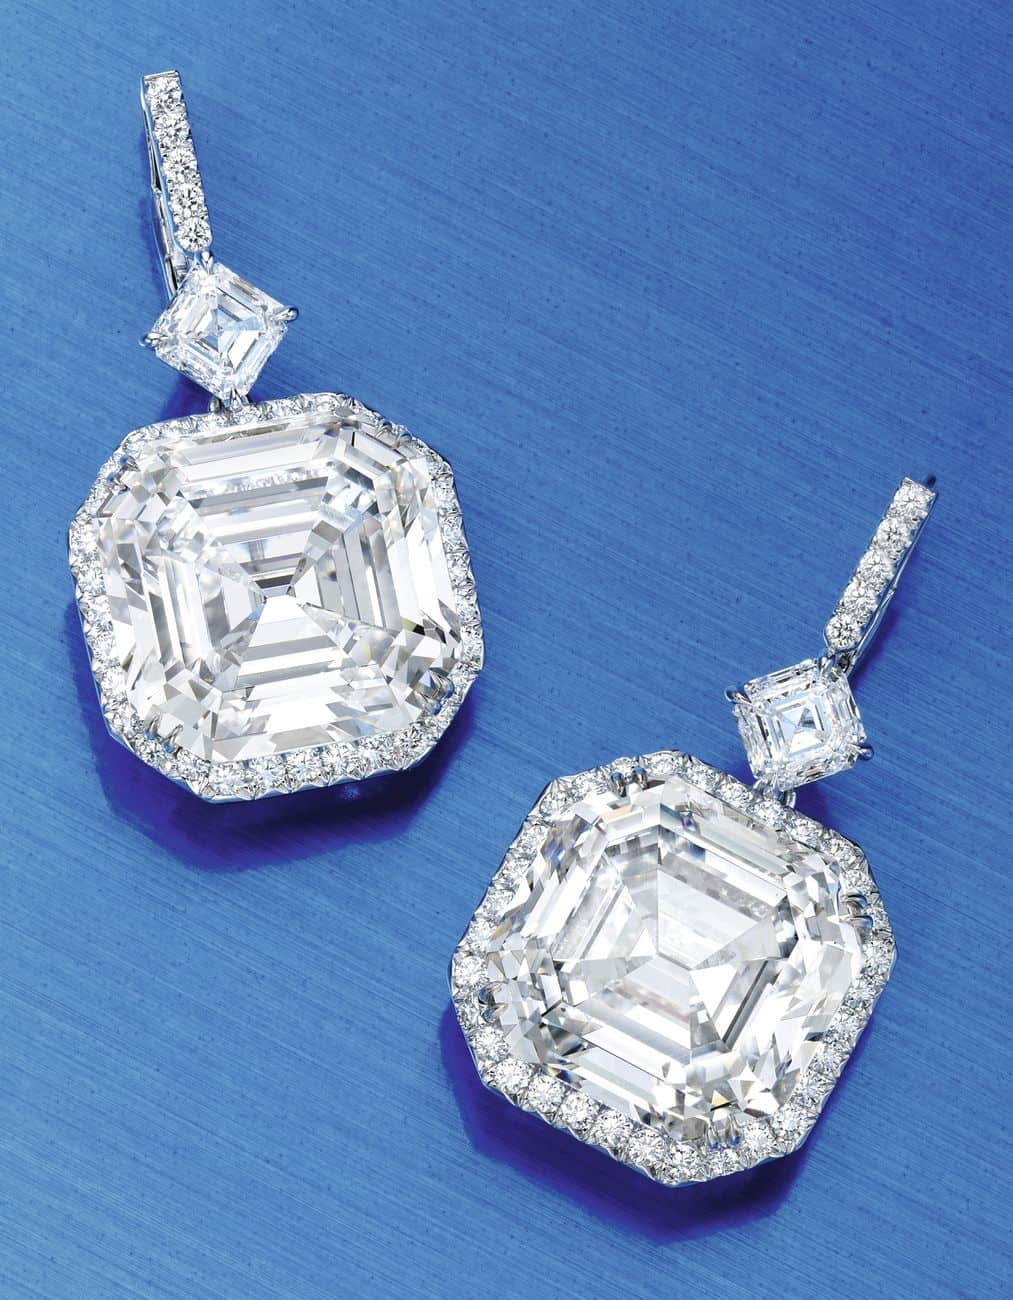 Lot 82 - Extraordinary Pair of Platinum and Diamond Earrings